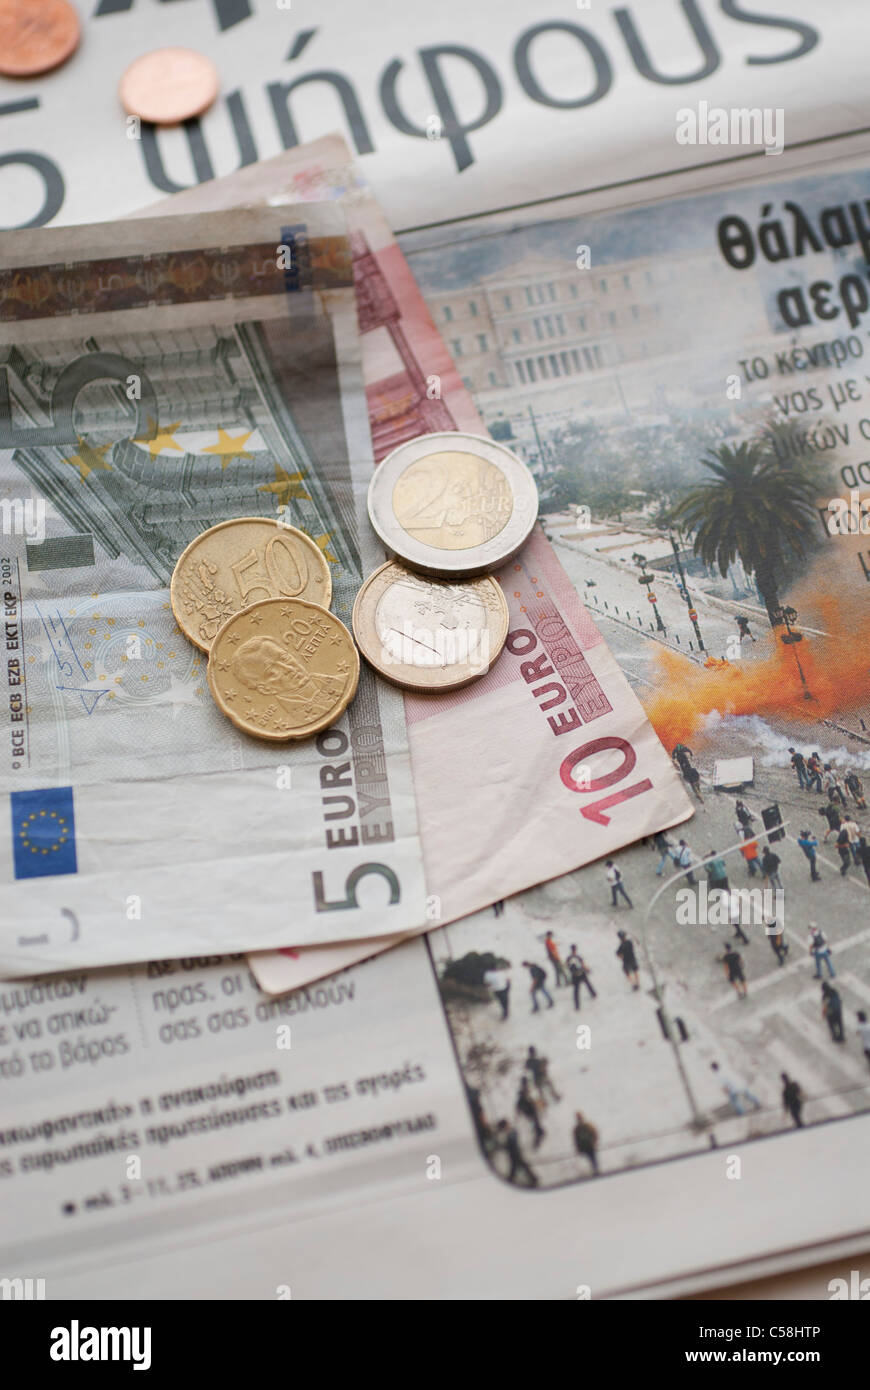 greece,crisis,protesters,money,financial,bankrupt,coins,newspaper,news - Stock Image